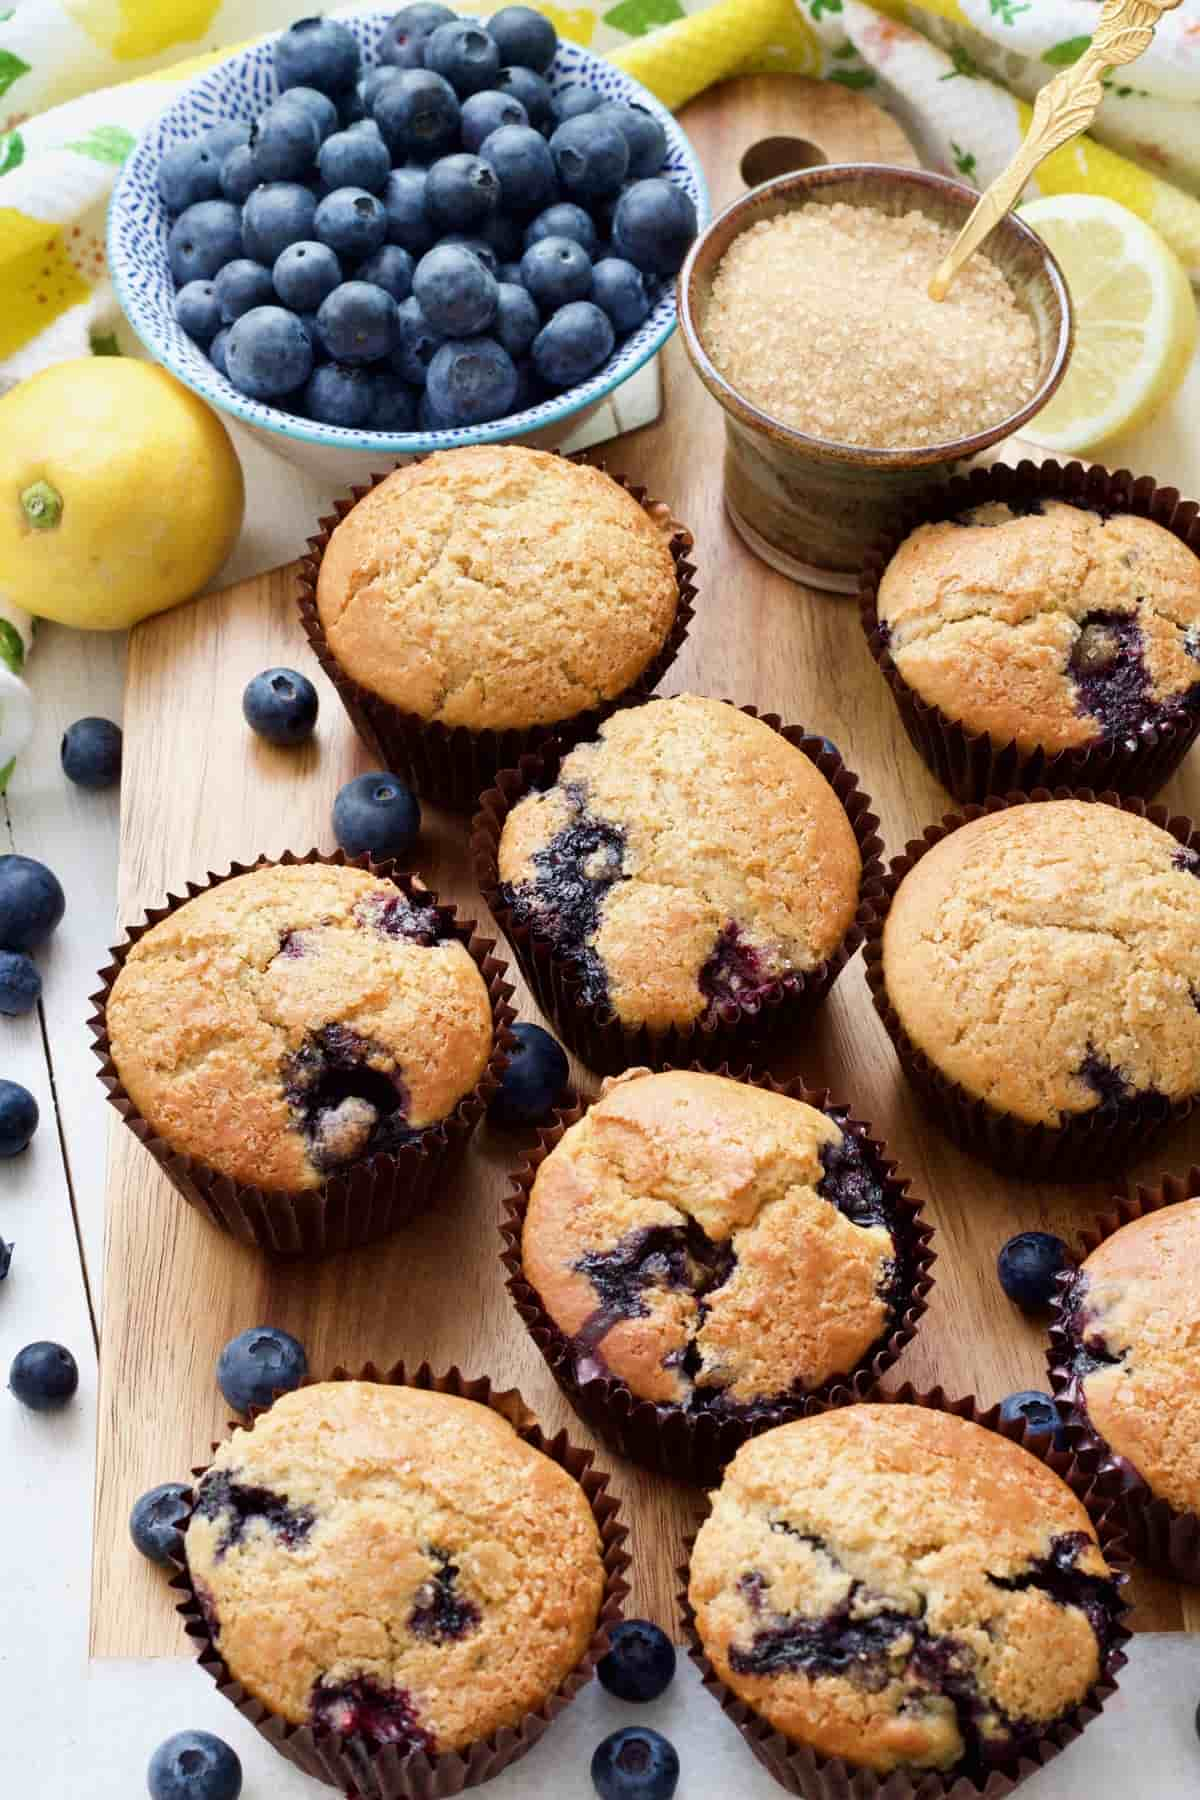 Muffins, bowl with blueberries, bowl with sugar & lemons.